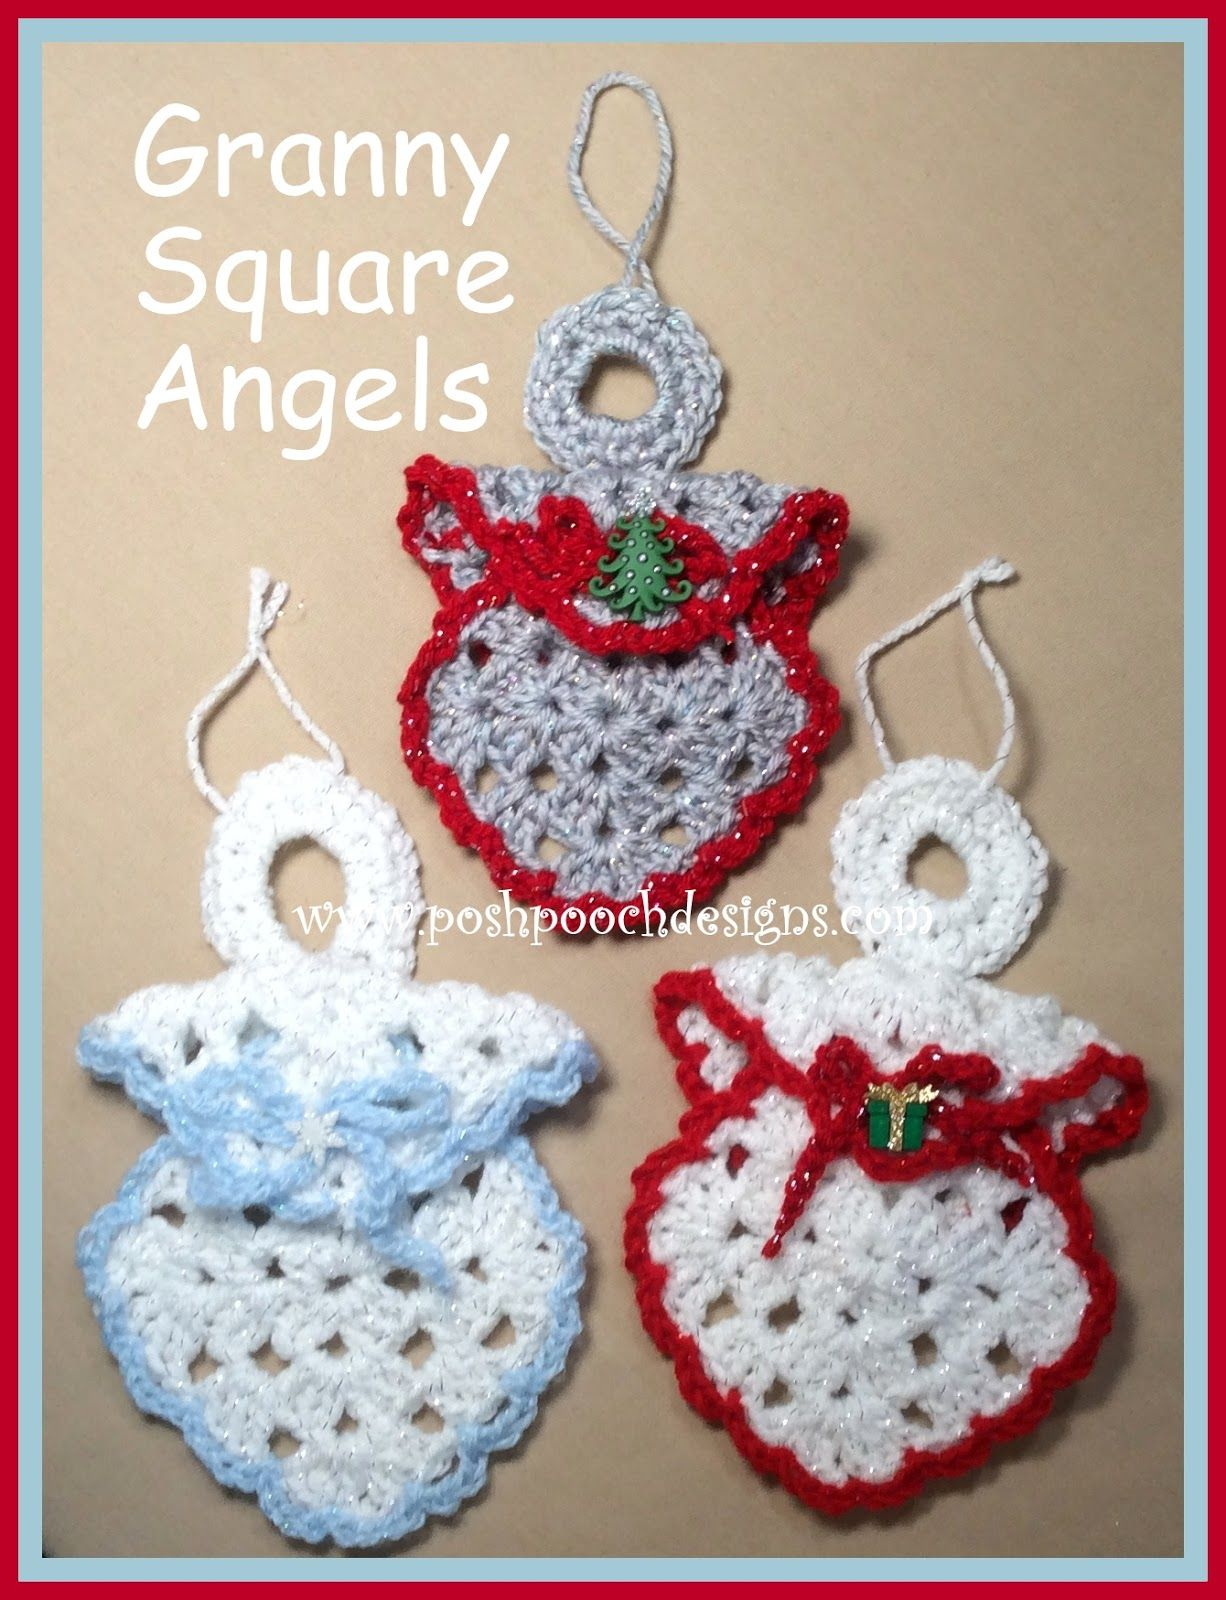 Granny Square Angel Ornament Crochet Pattern - Posh Pooch Designs